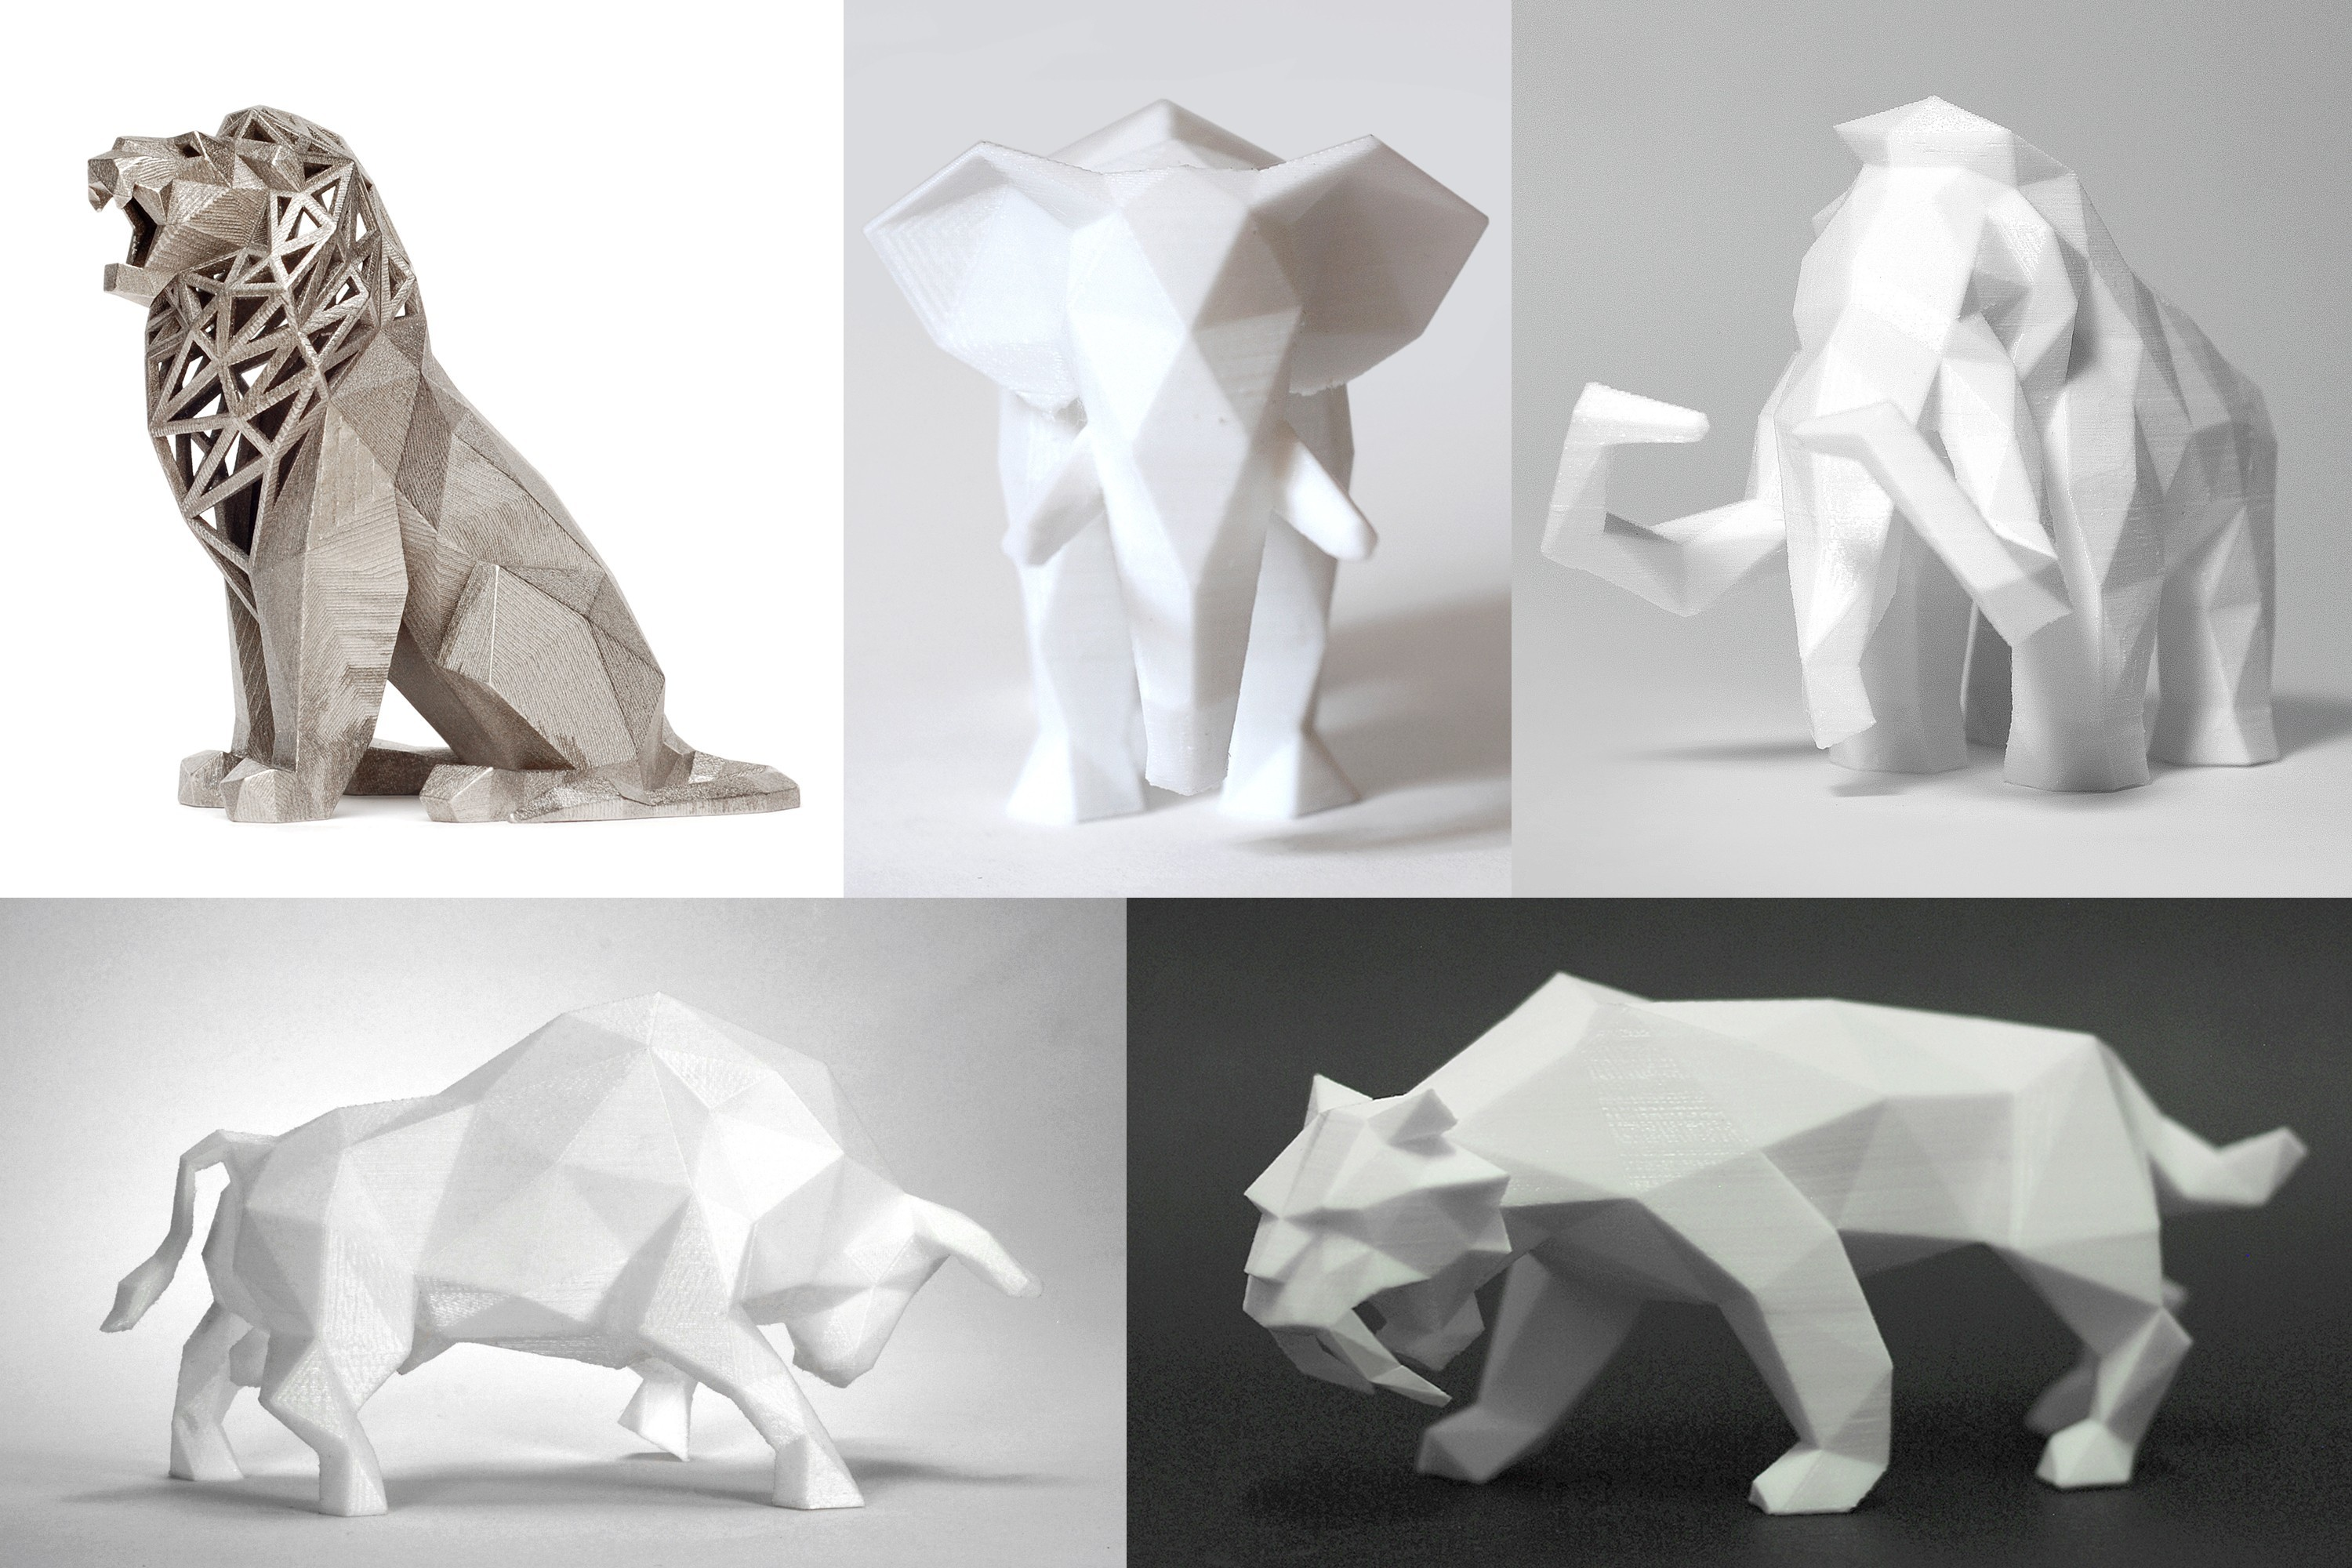 000 Low Poly Animals 3DP.jpg Download STL file Low Poly Animal Collection • 3D printing template, FORMBYTE